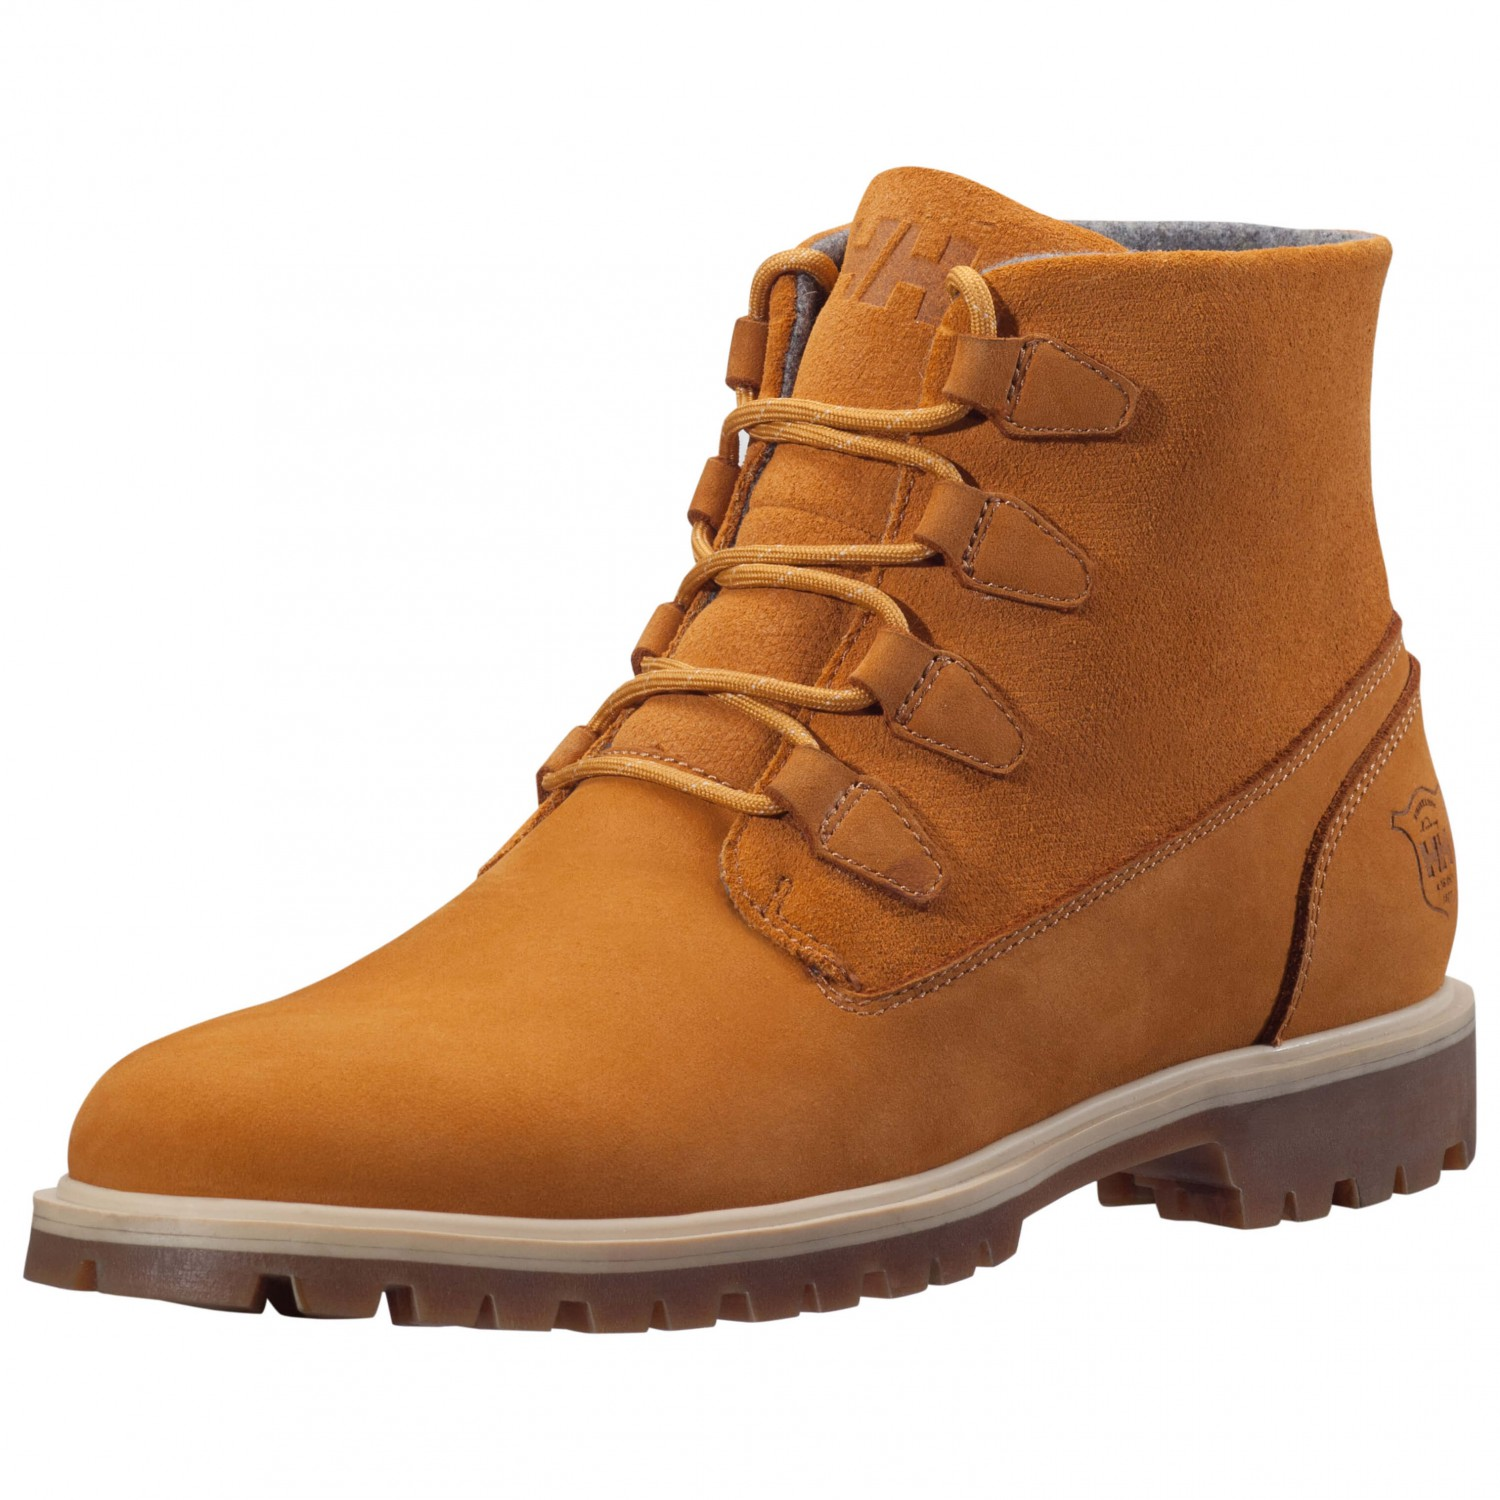 new arrive eebb7 19149 Helly Hansen - Women's Cordova - Casual boots - Honey Wheat / Oak Buff /  Marzipan / Lt Gum | 9,5 (US)